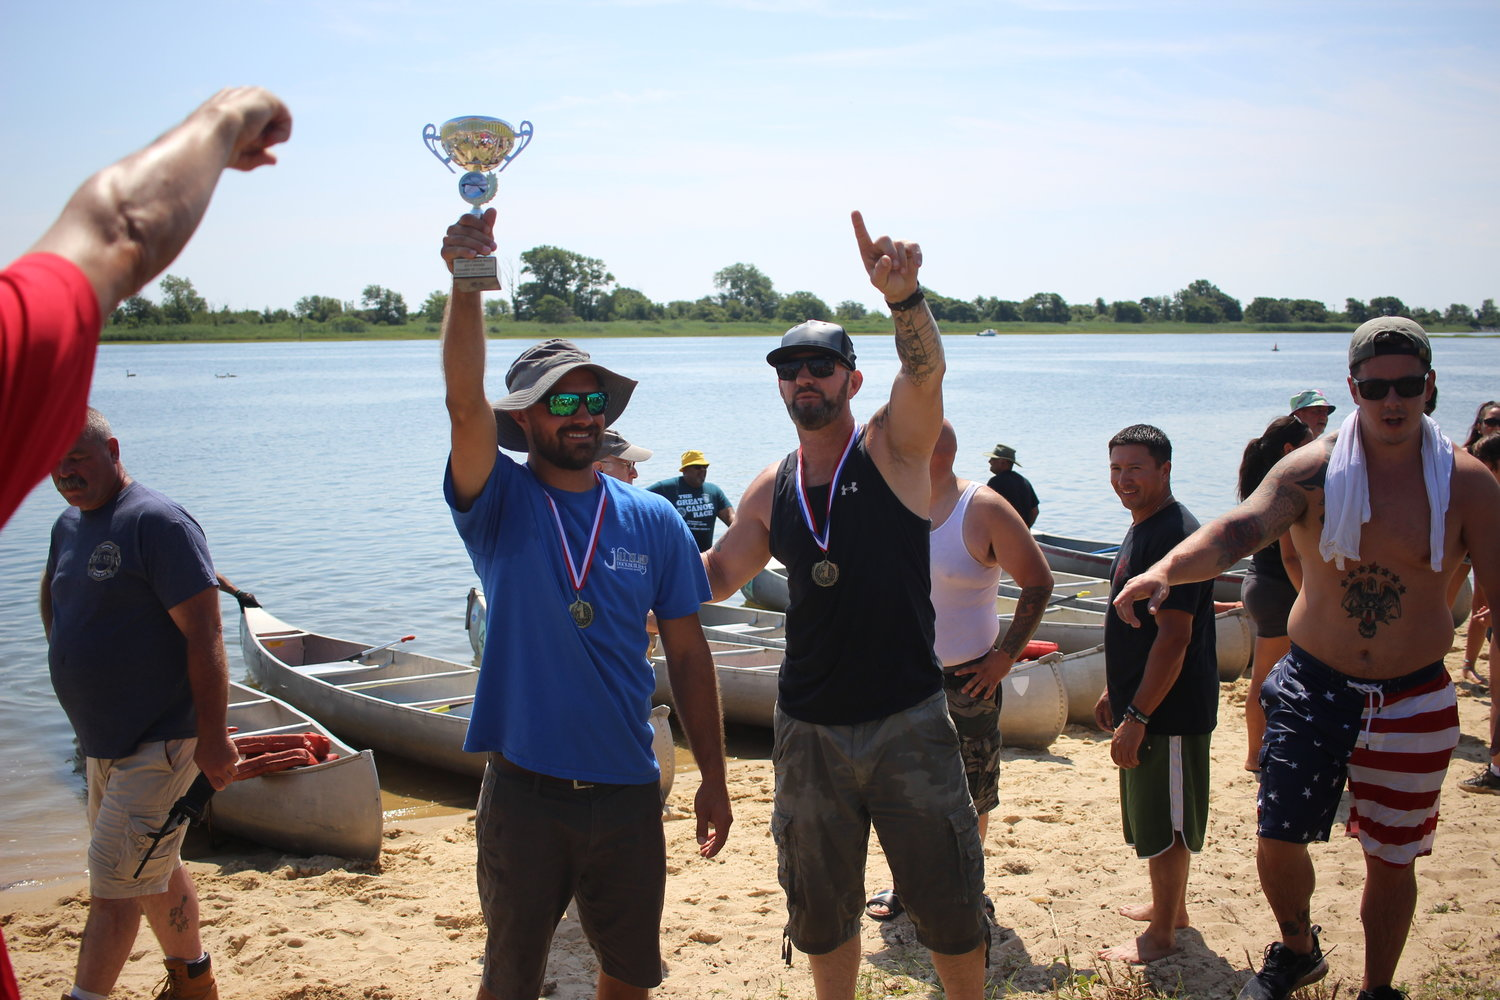 Racers Joe Micciulli, left, and Rob Weltner celebrated their first place win for their company All Island Dock Builders during the local business race.